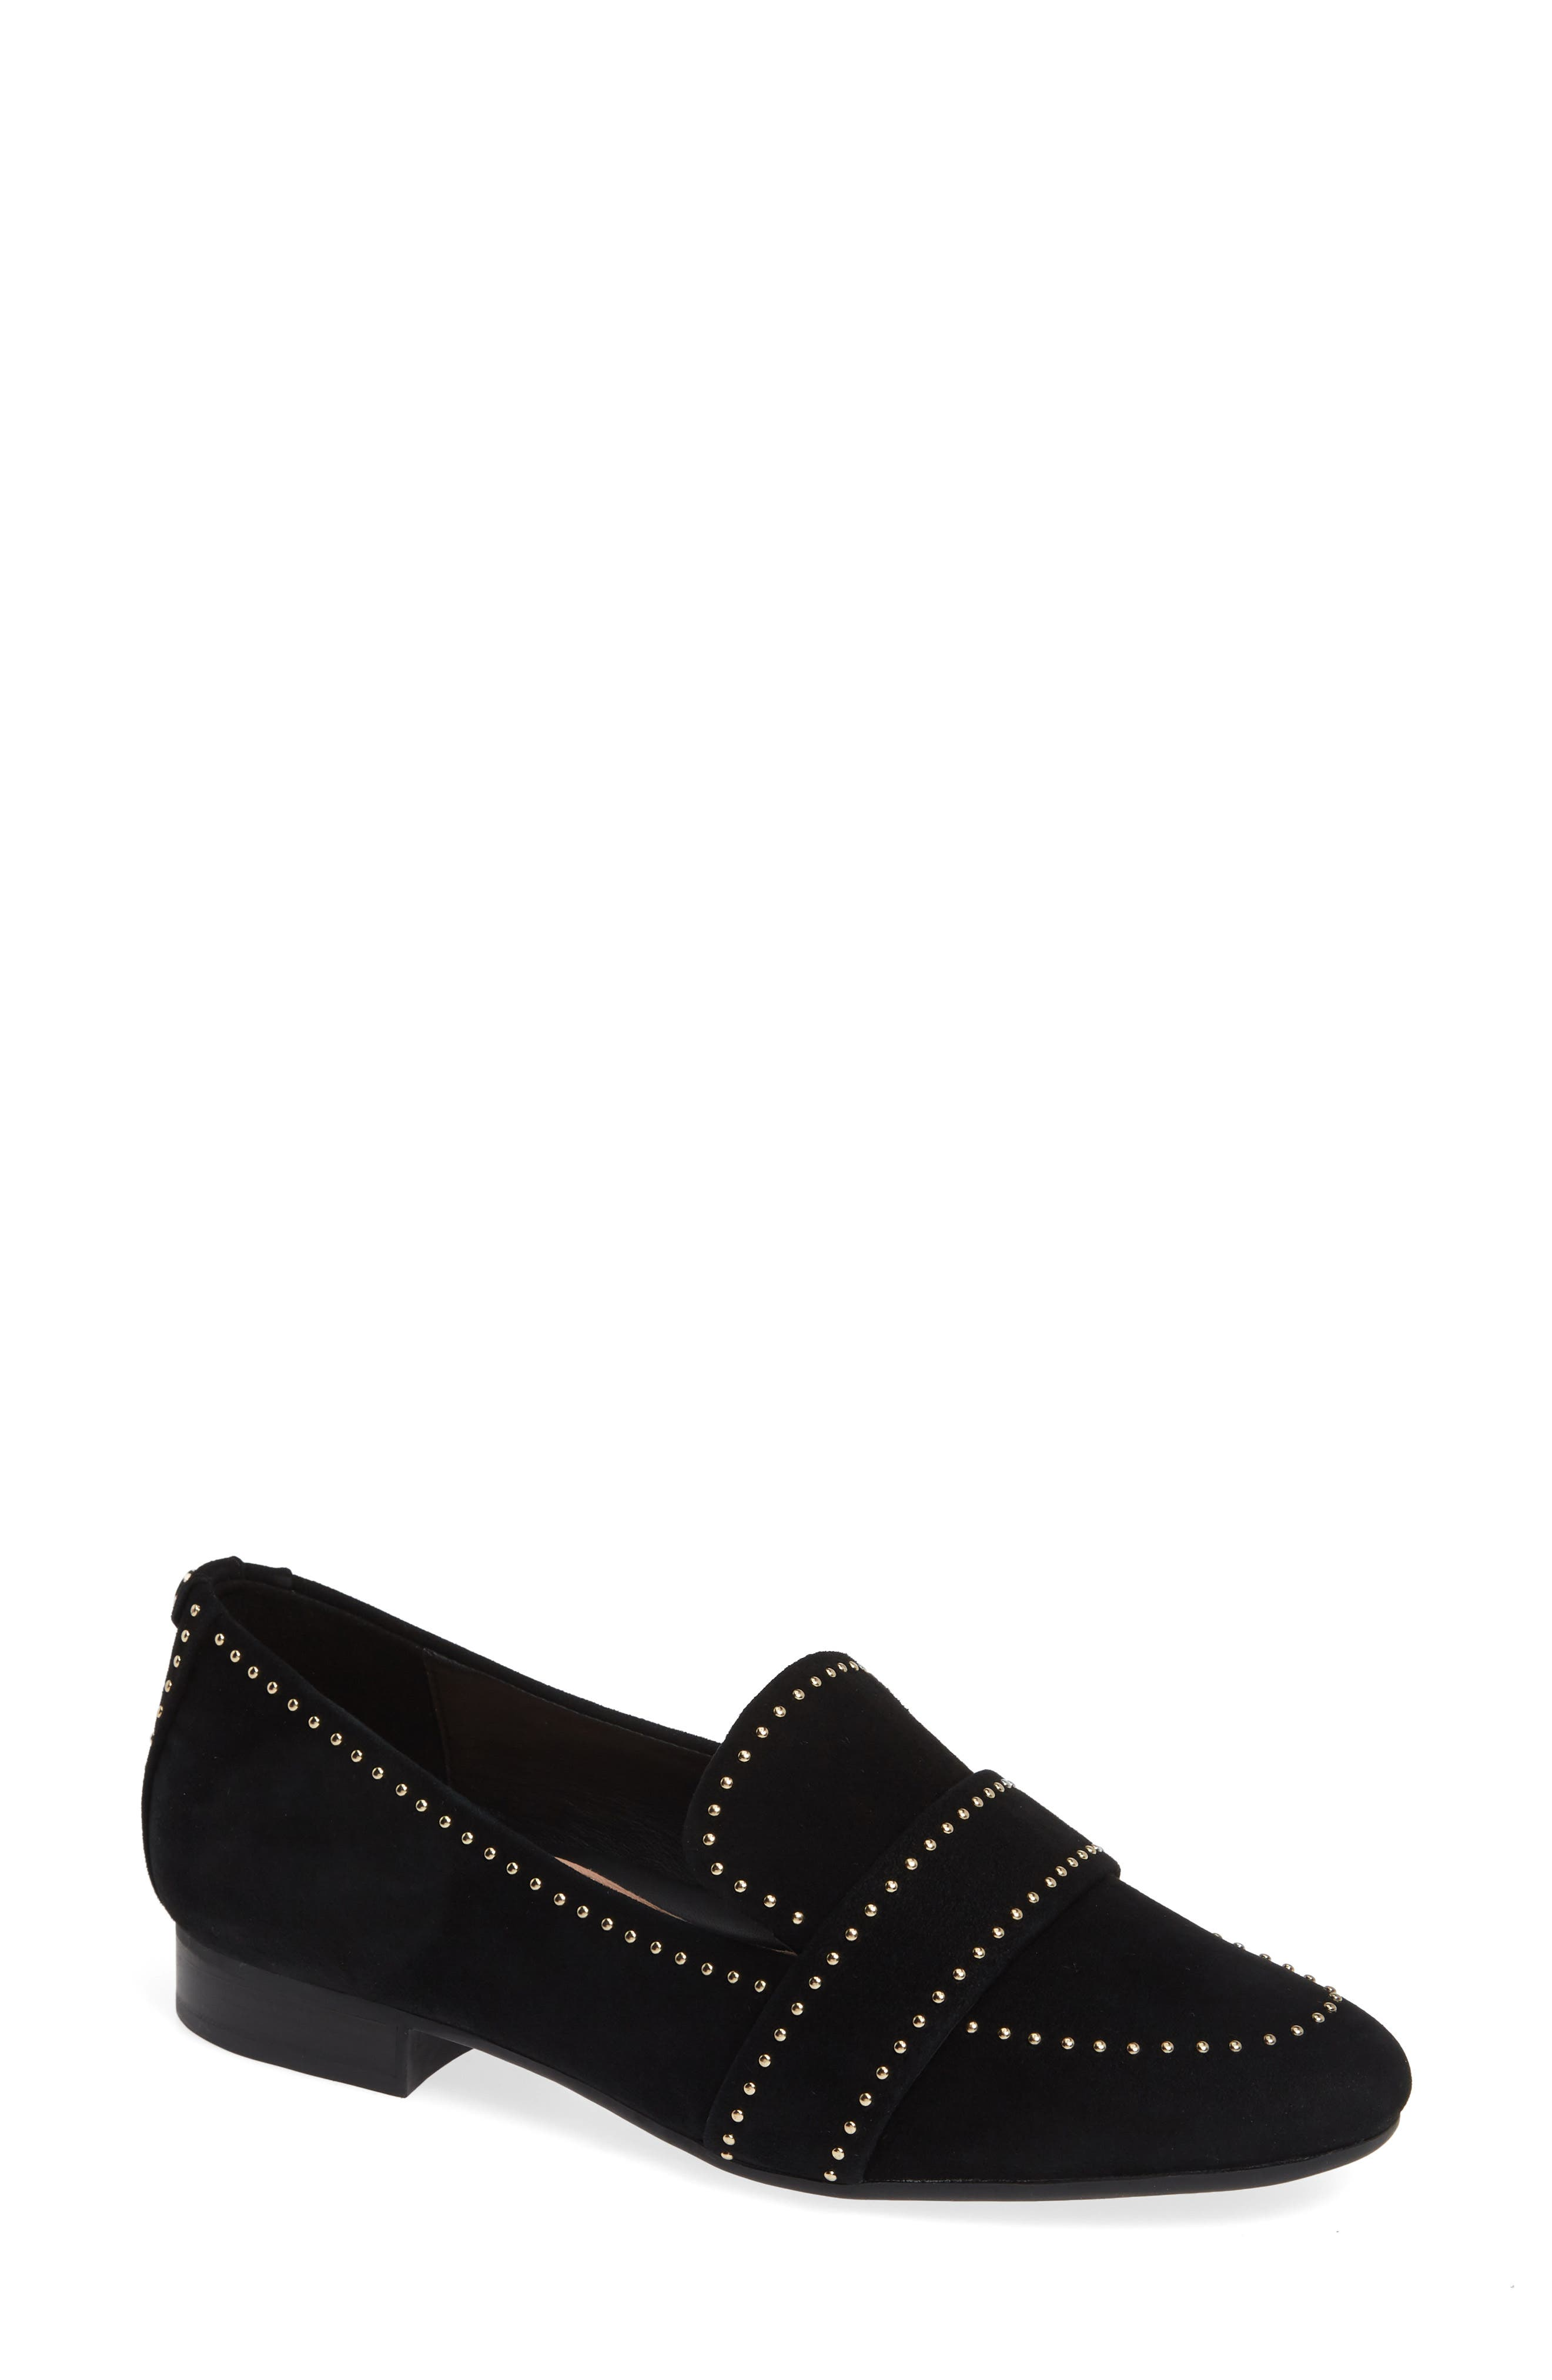 Bristol Loafer,                             Main thumbnail 1, color,                             BLACK SUEDE